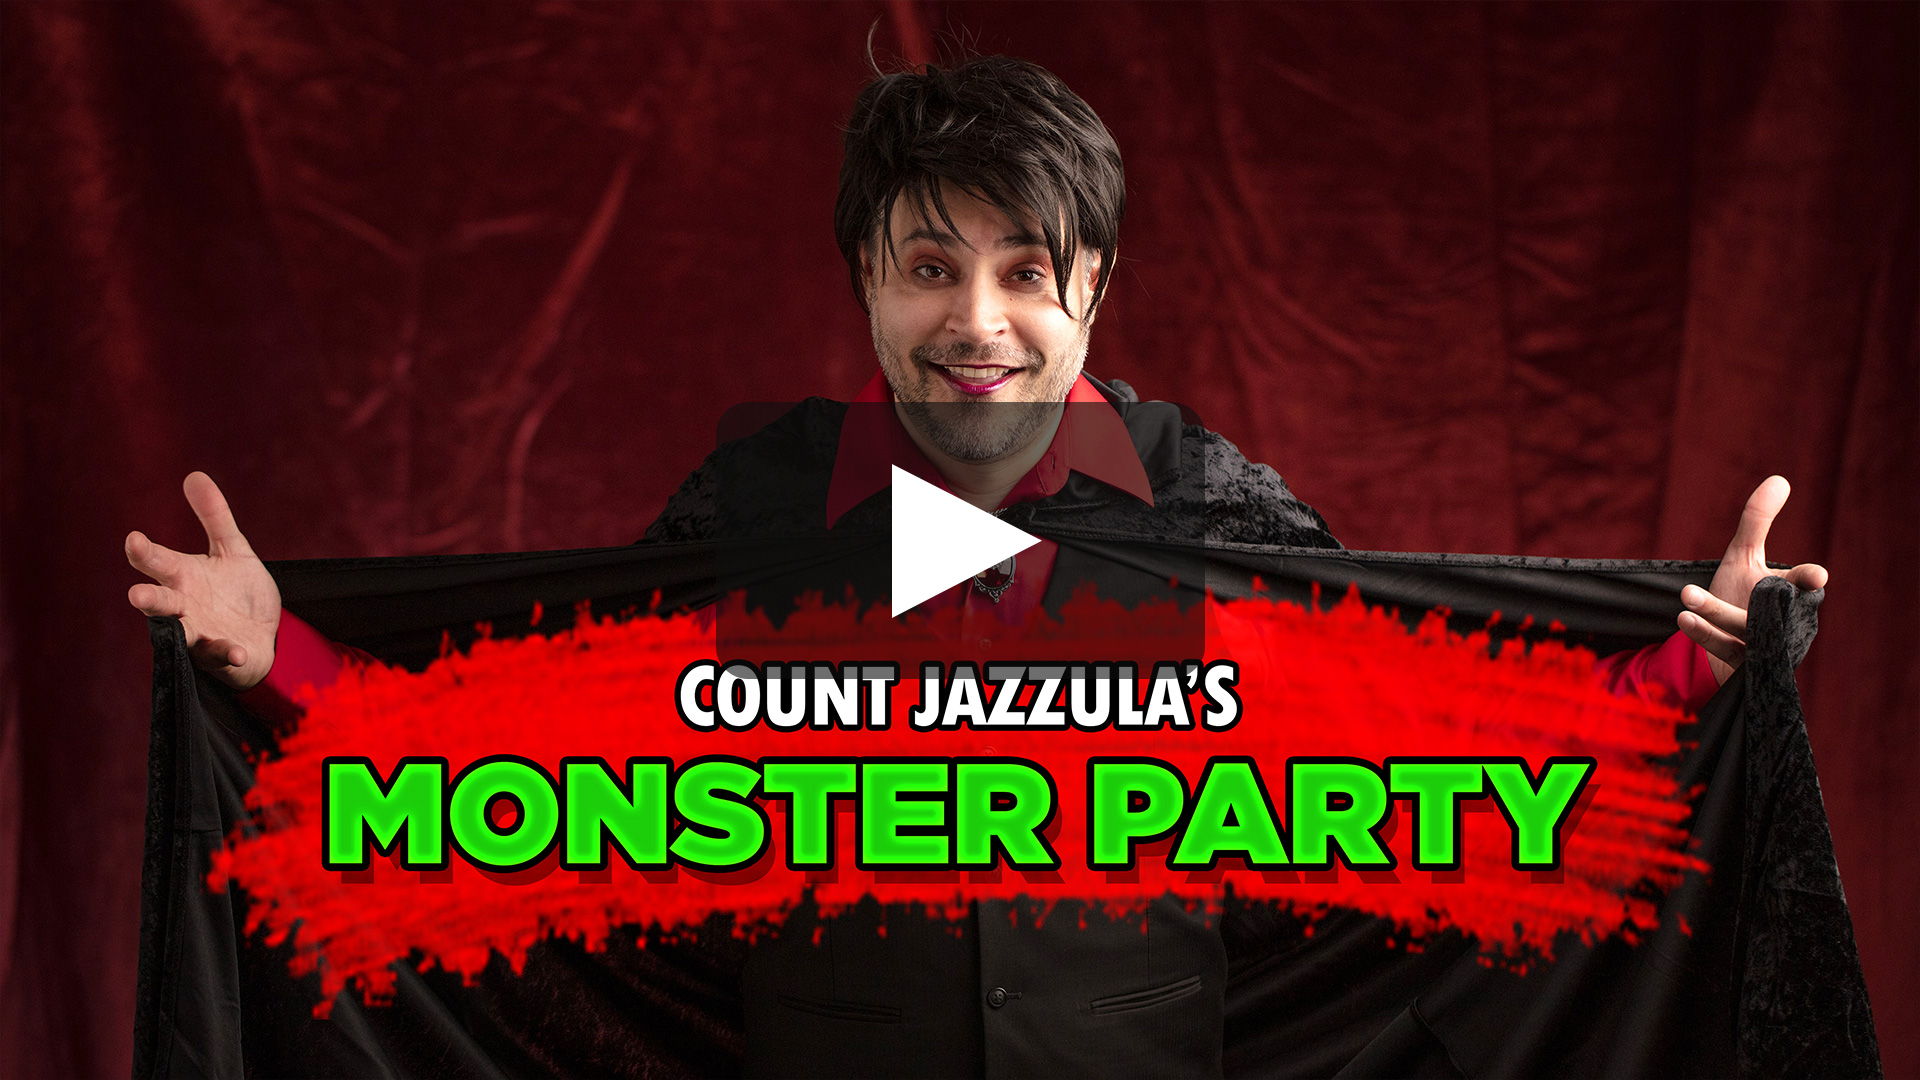 Count Jazzula's Monster Party